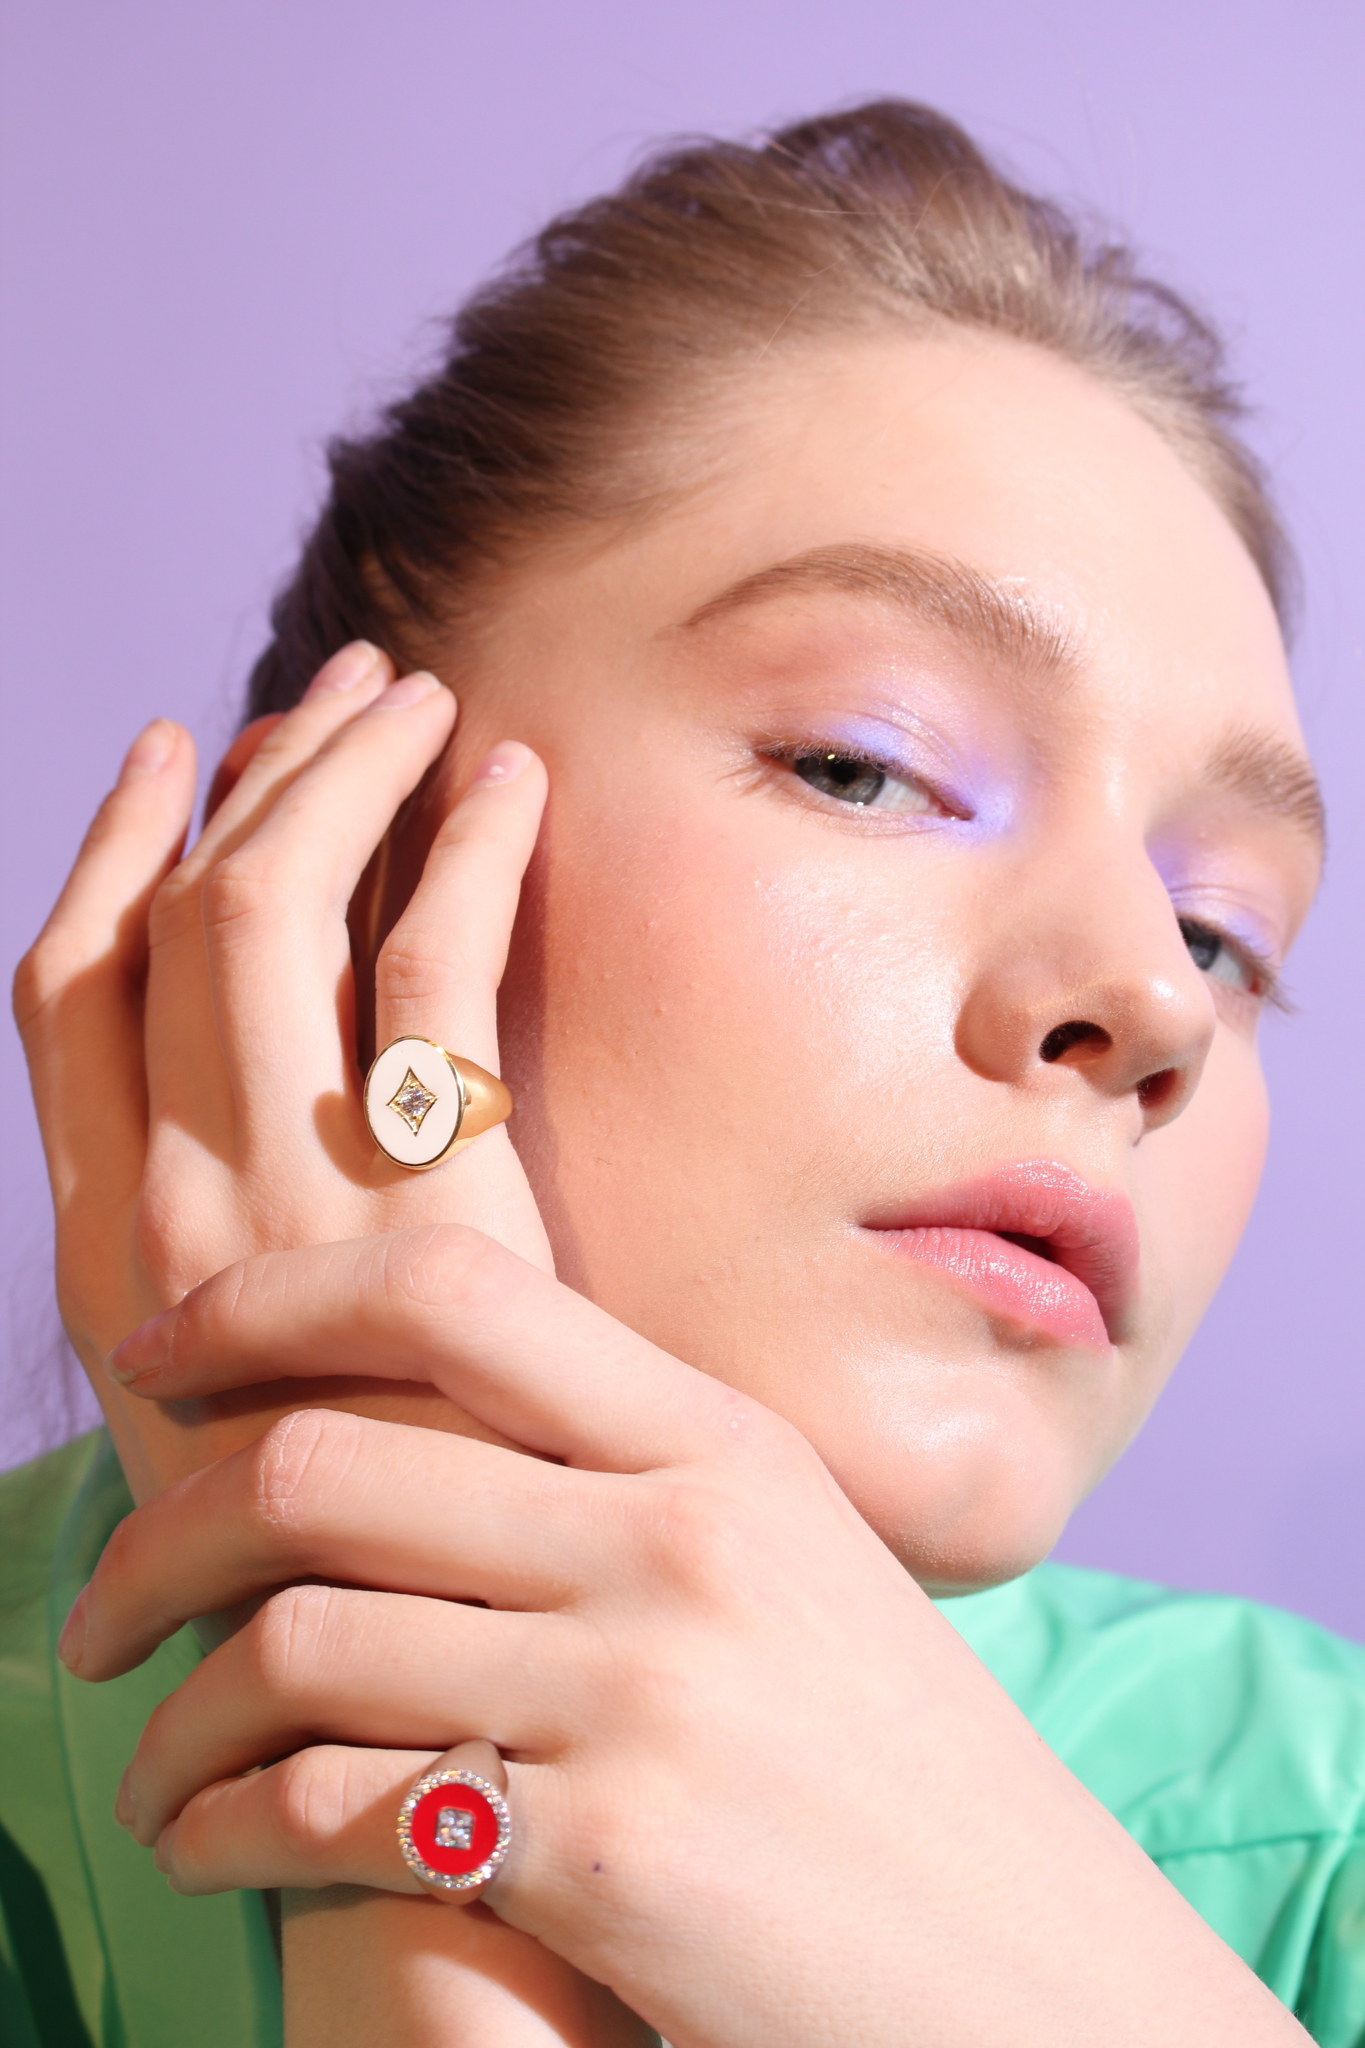 Signet ring in gold plated silver and white enamel